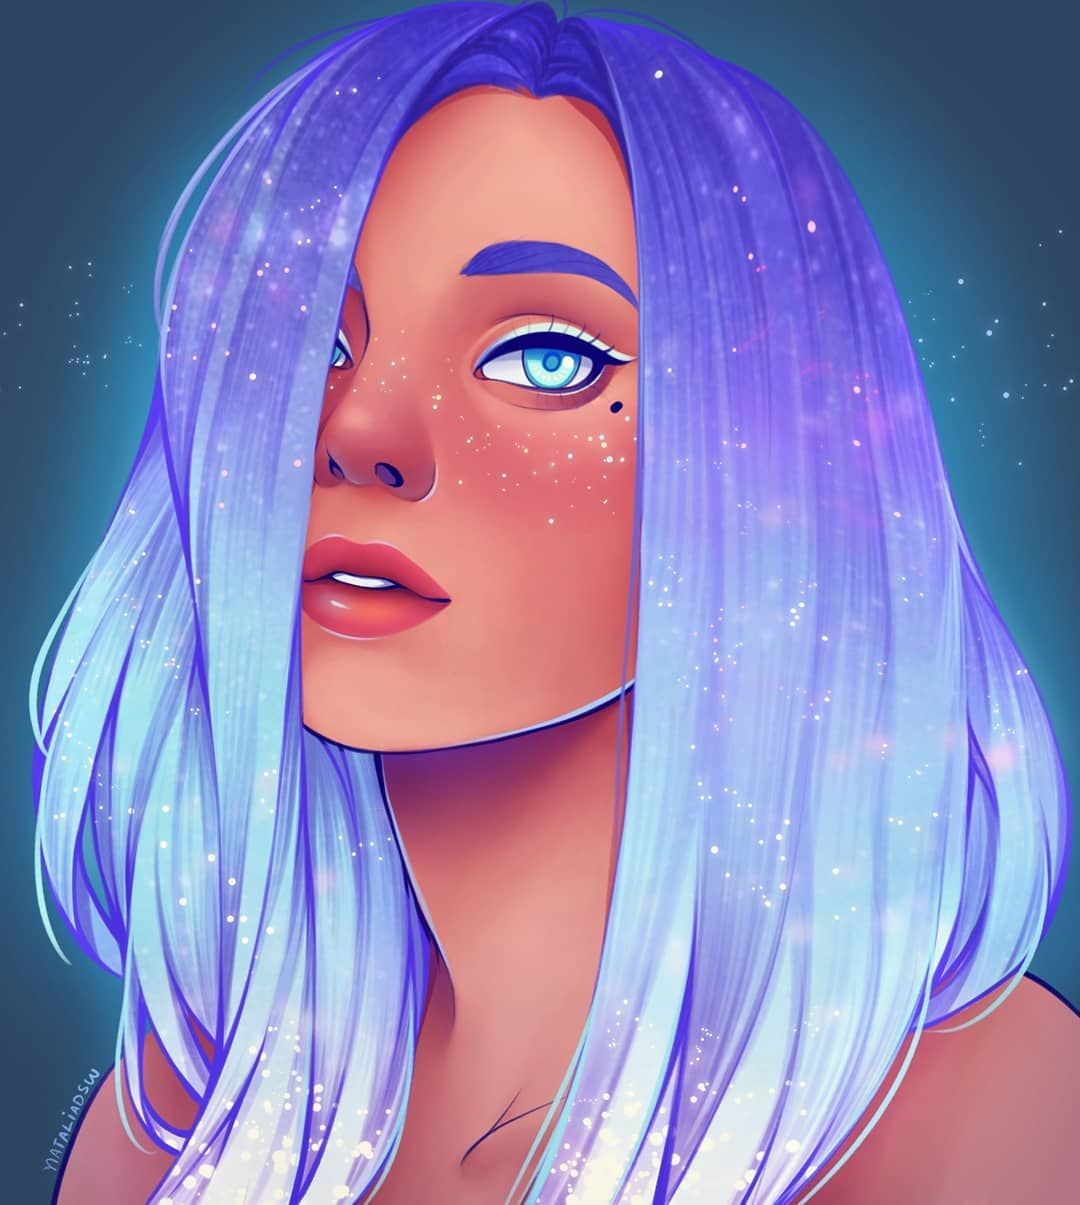 Natalia Dias On Instagram Today S Drawing Is Just Because I Wanted To Do Some Shiny Hair I Ho Digital Art Girl Girls Cartoon Art Digital Portrait Art